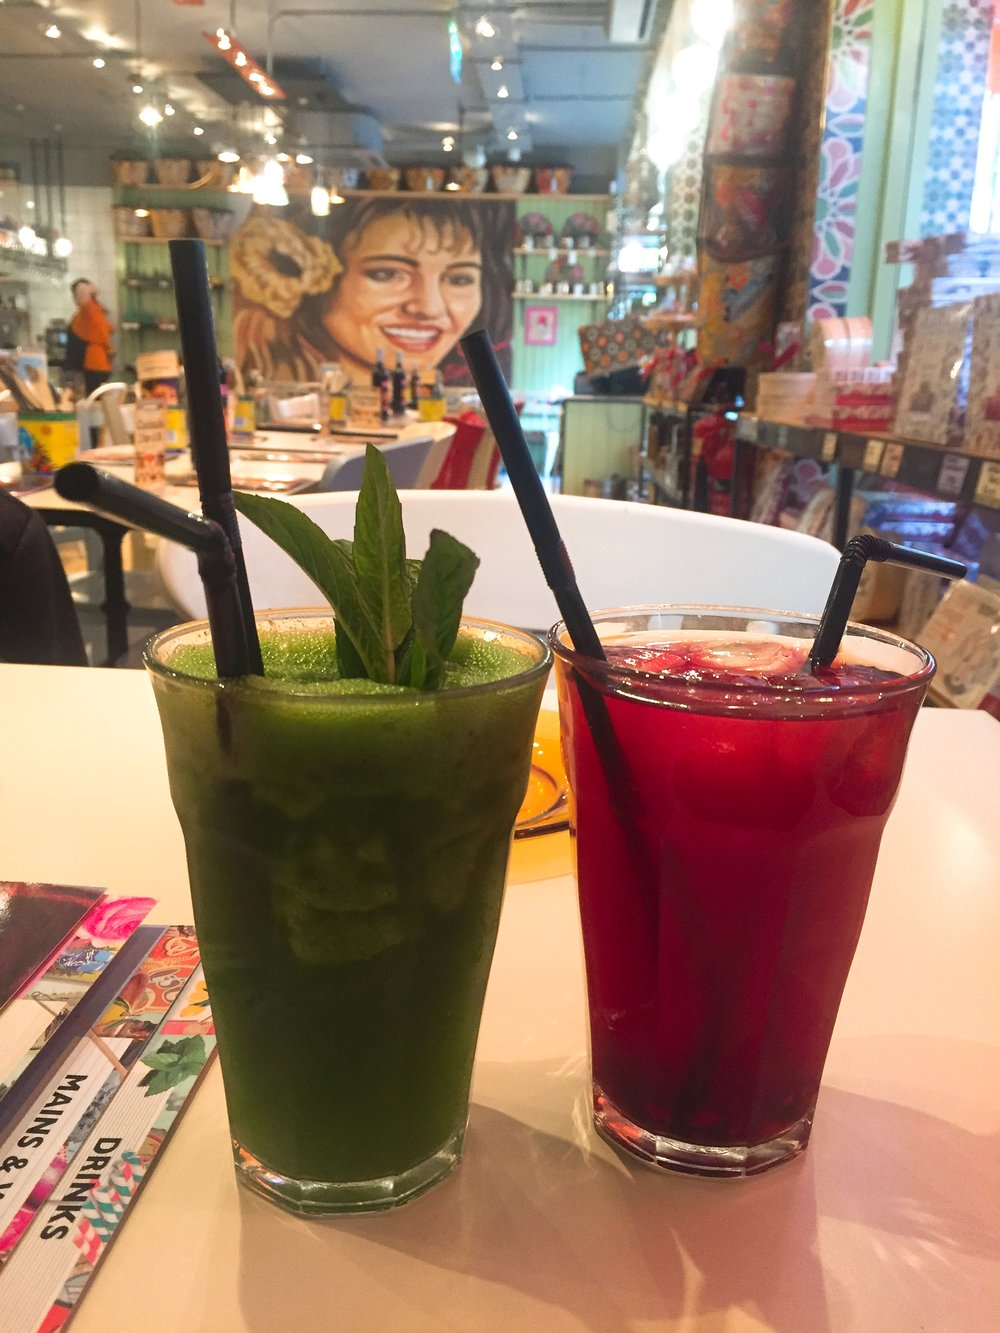 Drinks at Comptois Libanais review